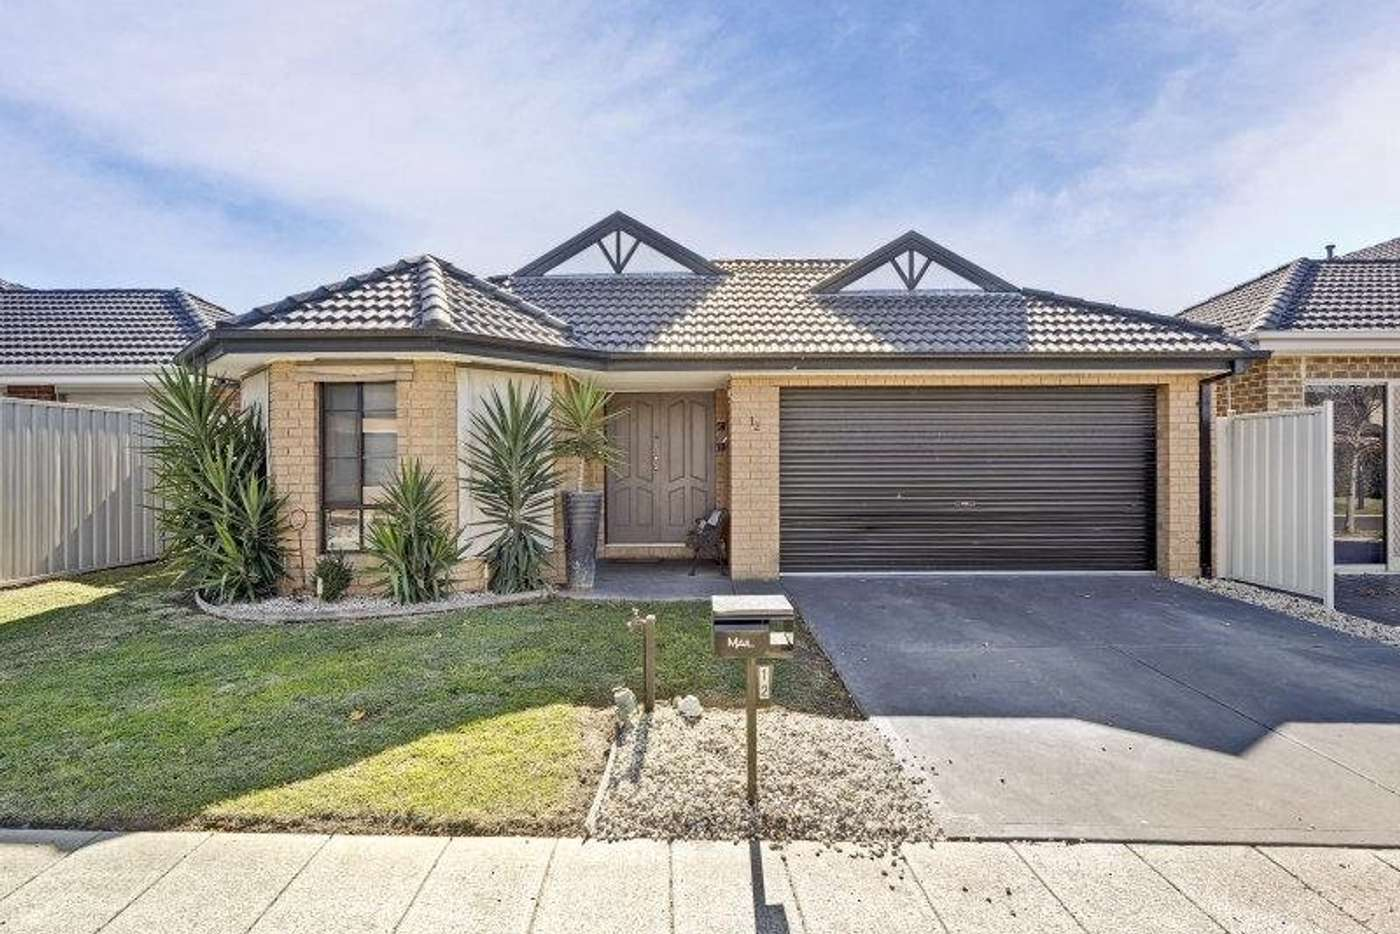 Main view of Homely house listing, 12 Durban Place, Craigieburn VIC 3064